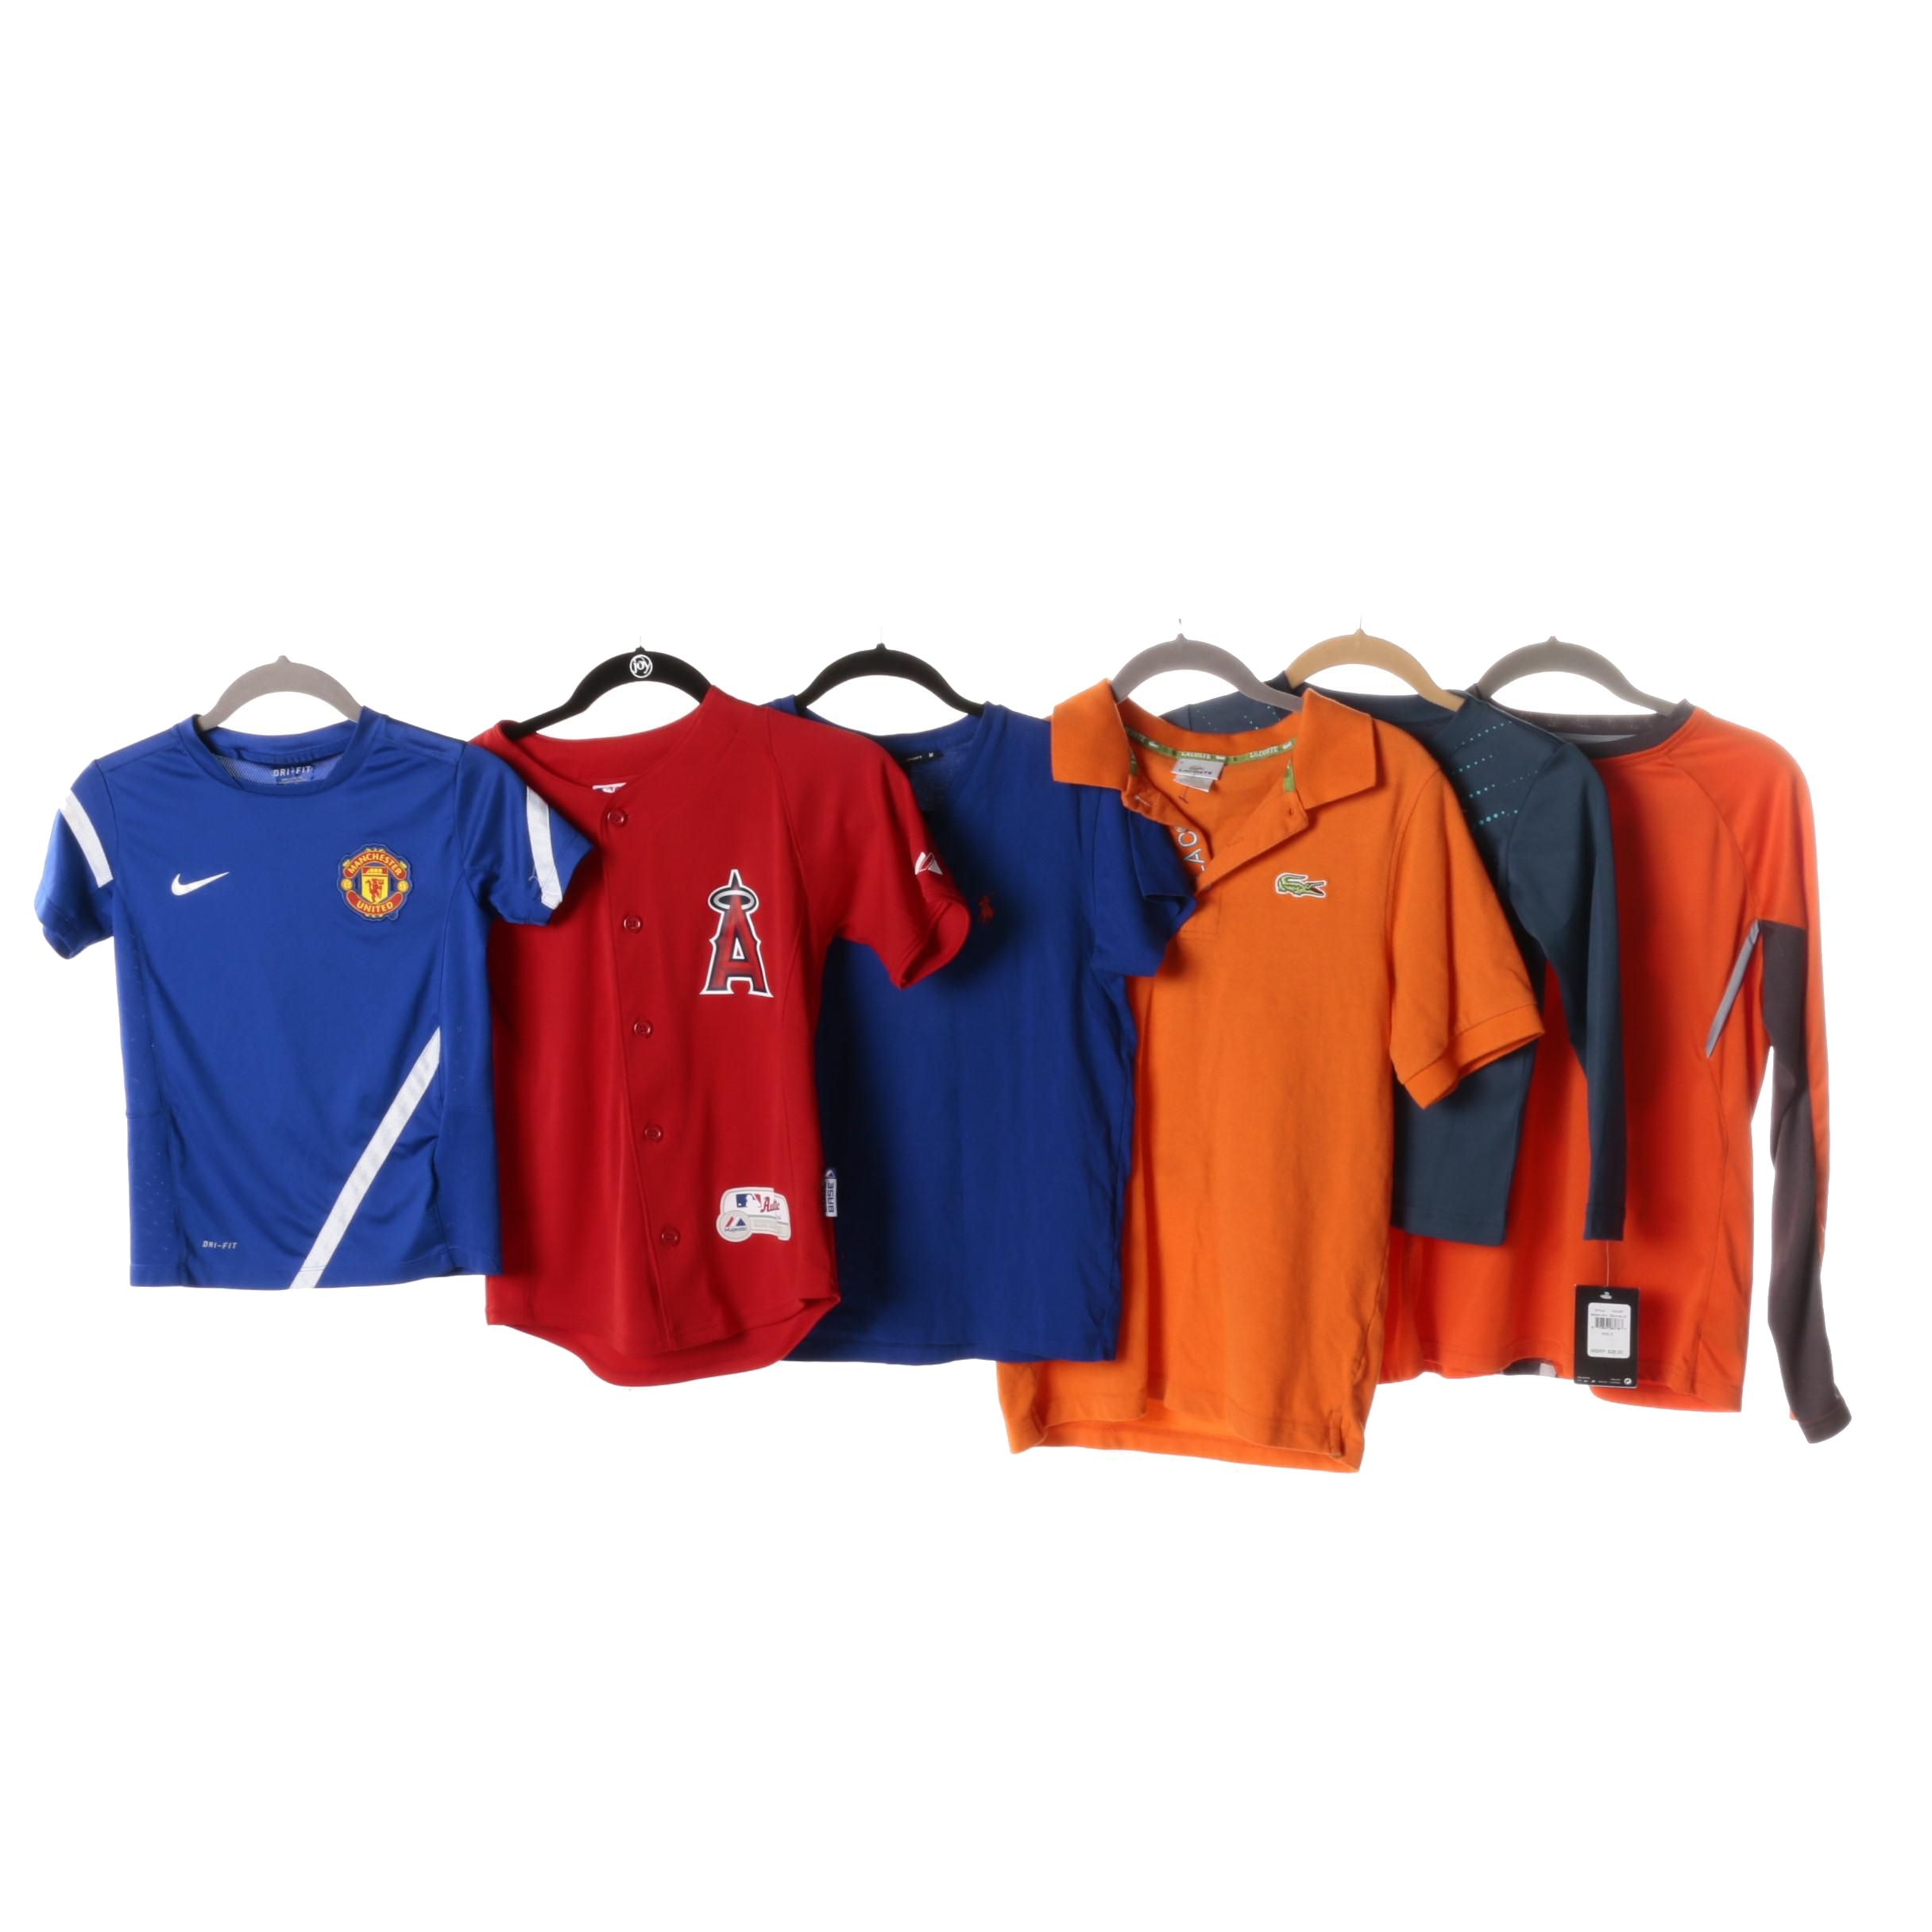 Boy's T-Shirts, Jerseys and Polos Including Lacoste and Nike